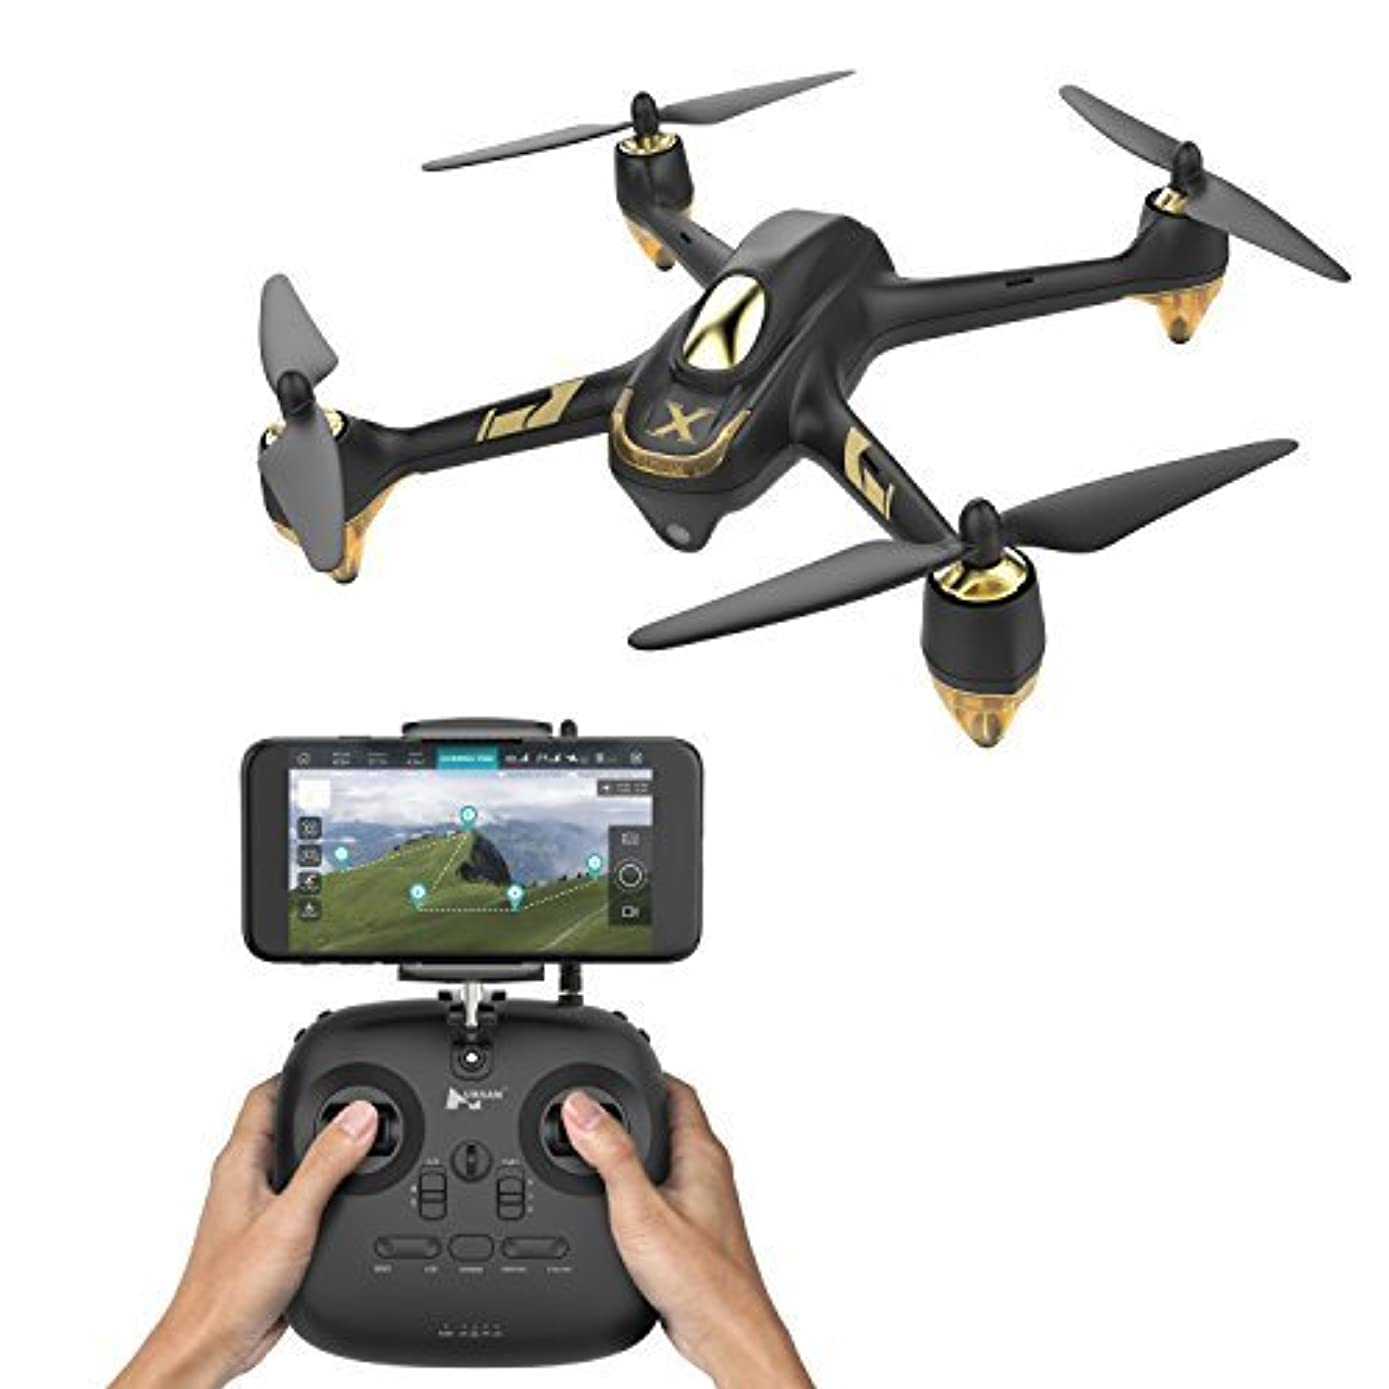 HUBSAN H501A+ X4 Drone Brushless WiFi GPS and App Compatible 6 Axis Gyro 1080P HD Camera RTF Quadcopter (Upgraded Version H501A+)